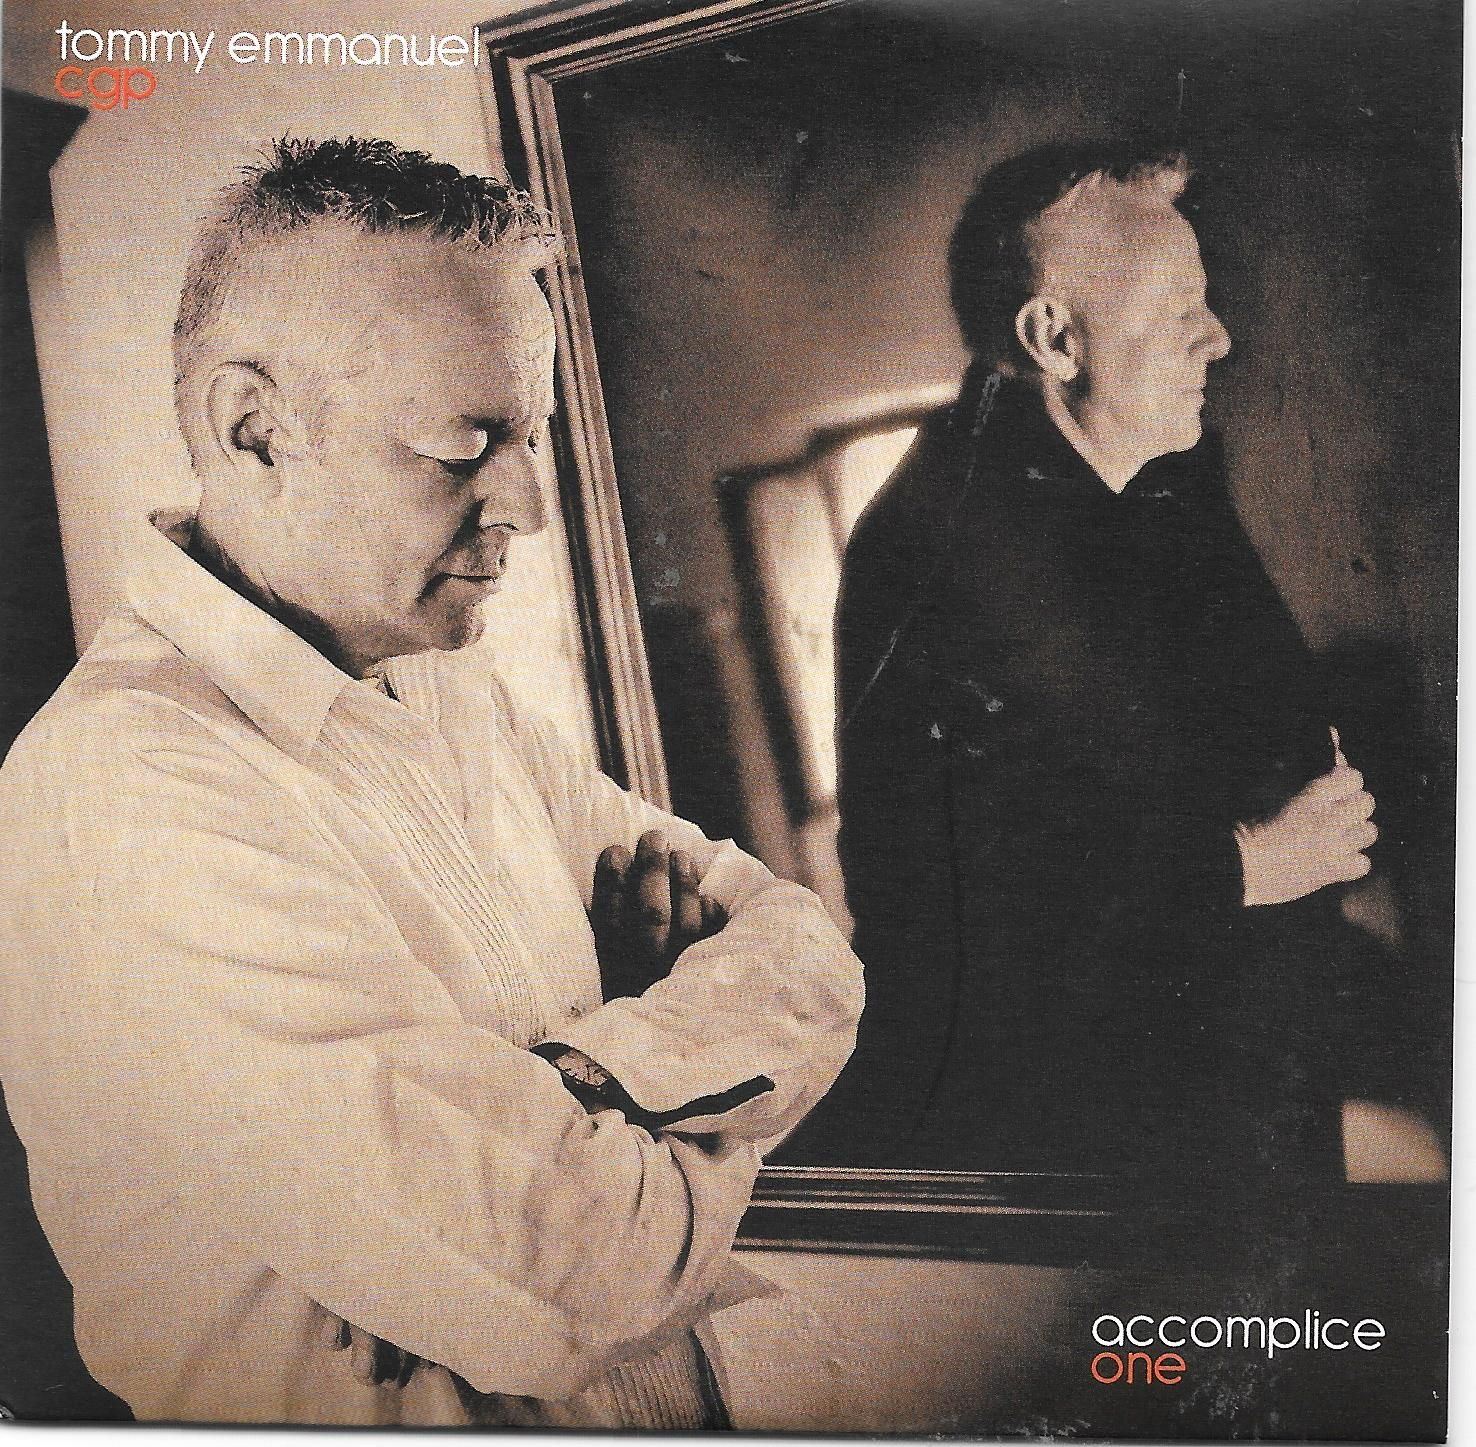 Tommy Emmanuel Joined By Superb Artists on Accomplice One